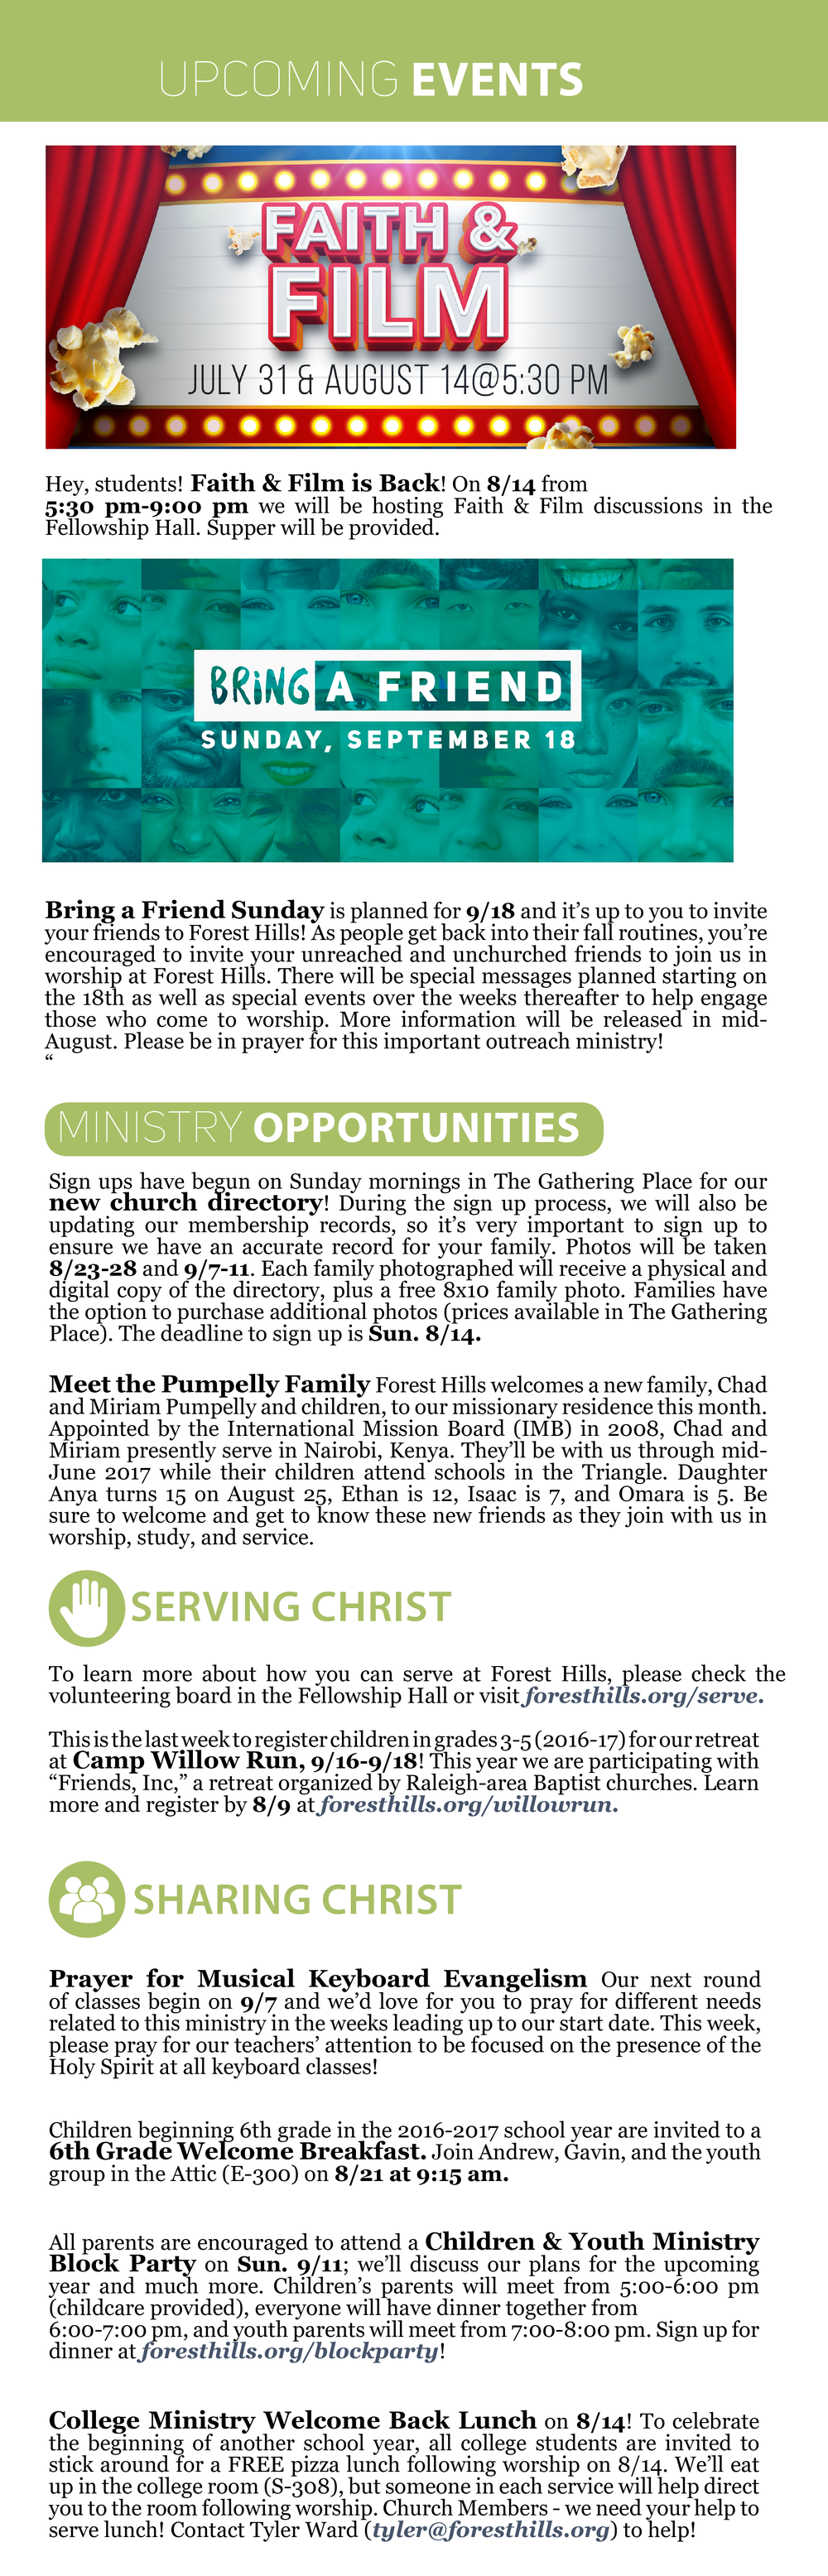 forest hills baptist church in raleigh nc weekly update